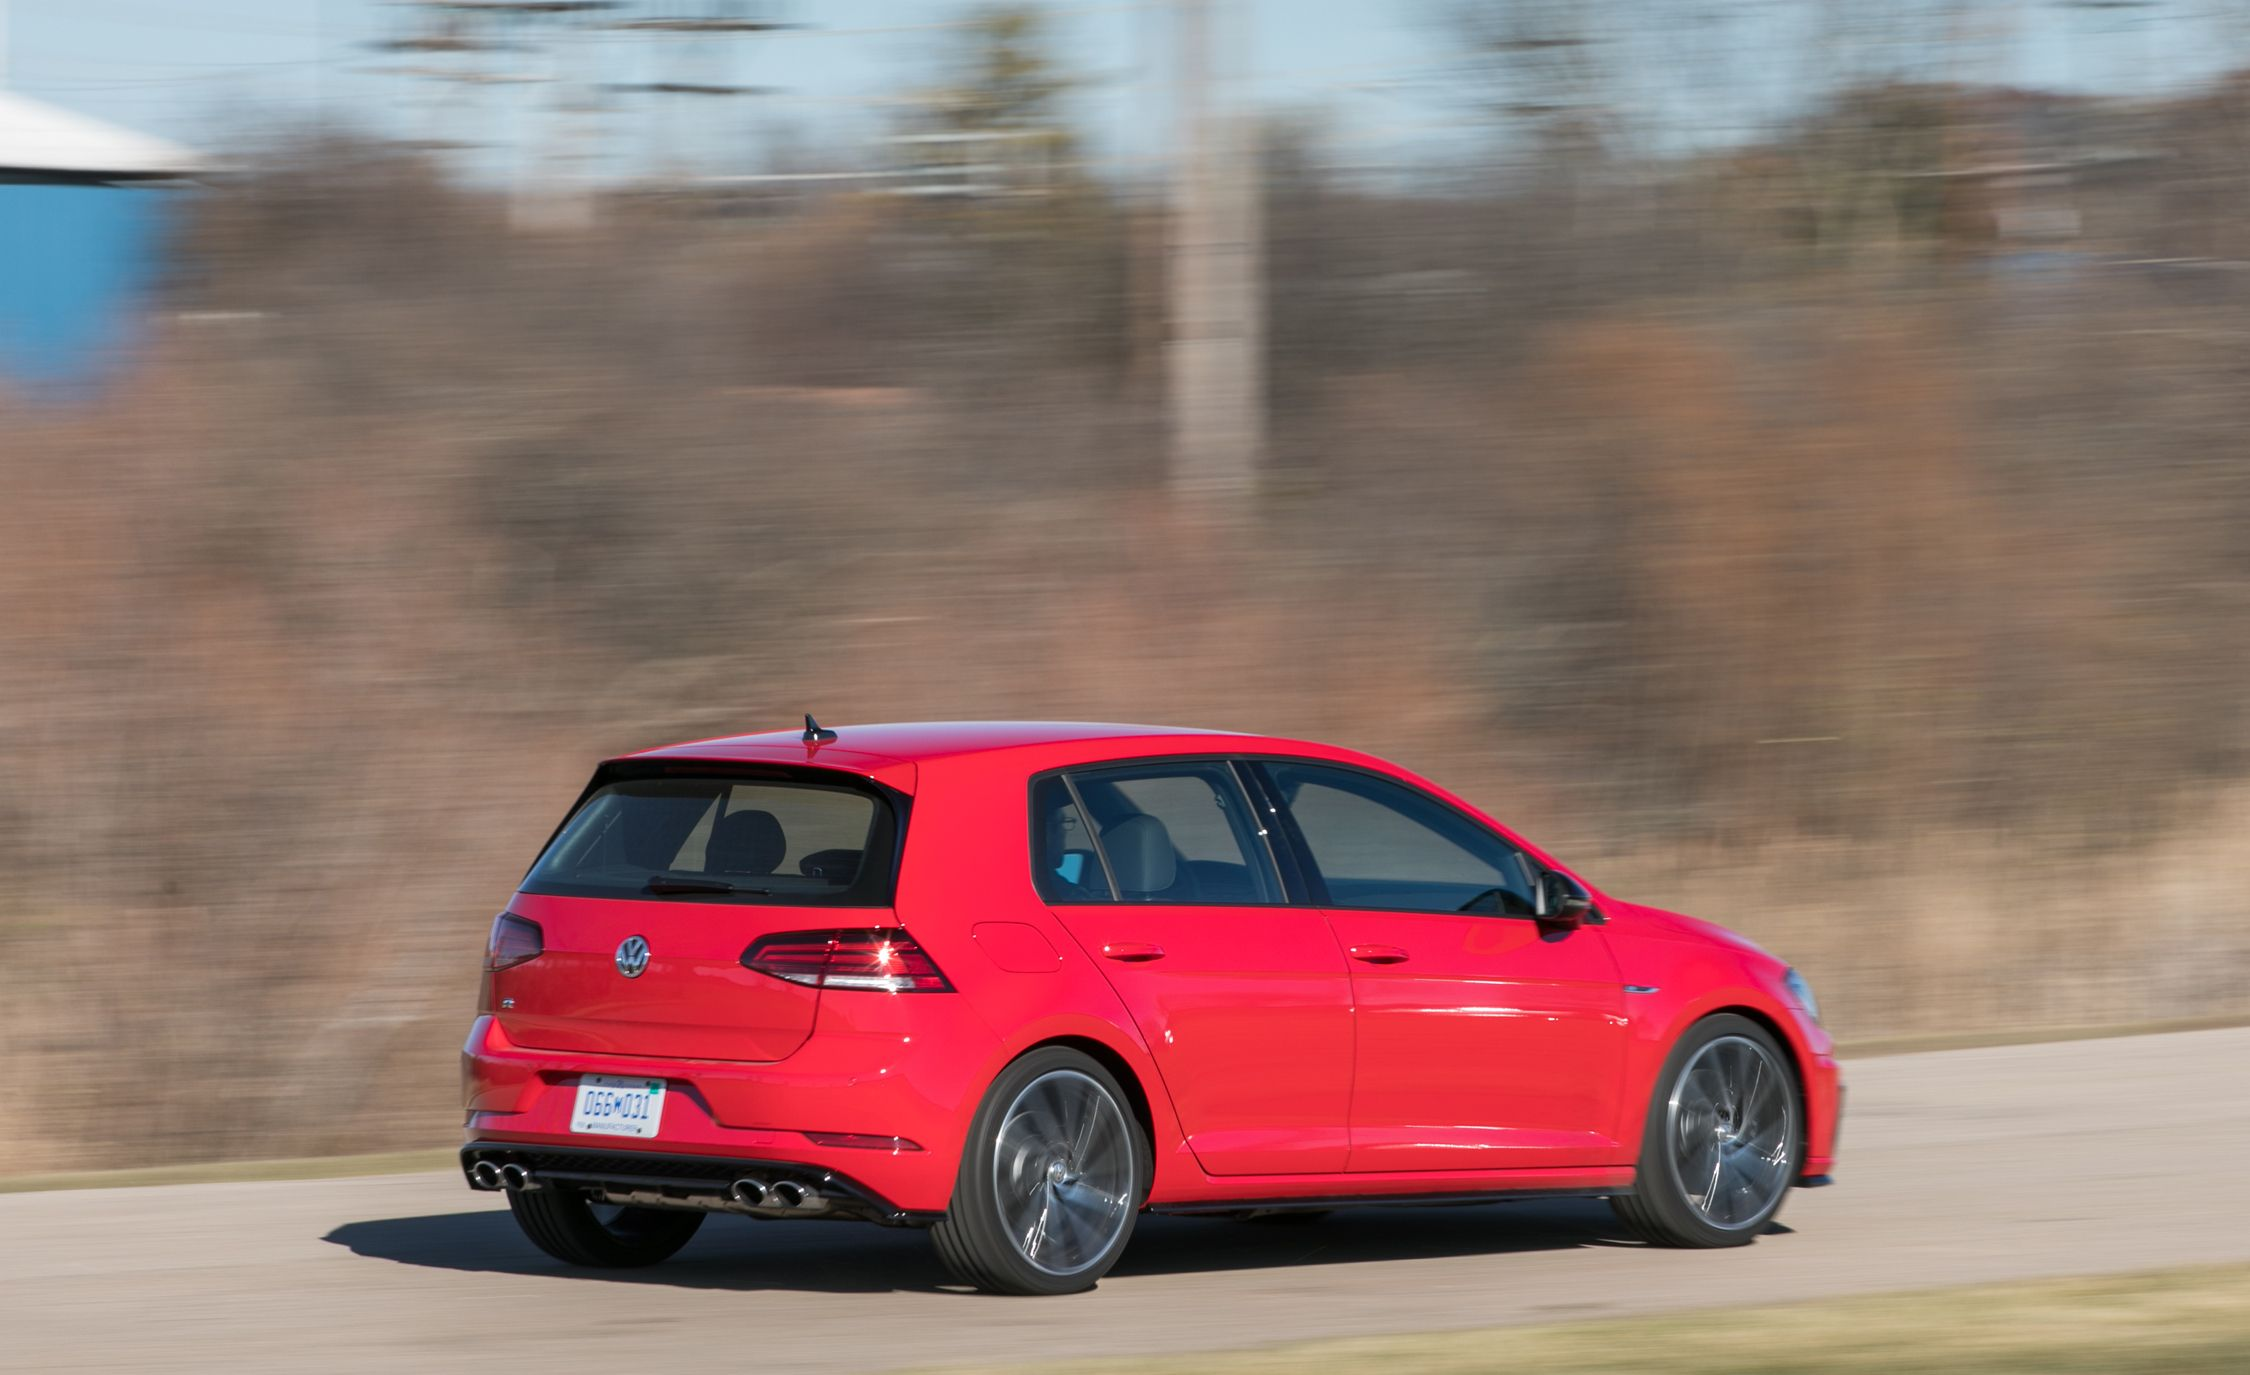 Volkswagen Golf R Reviews | Volkswagen Golf R Price, Photos, and Specs |  Car and Driver